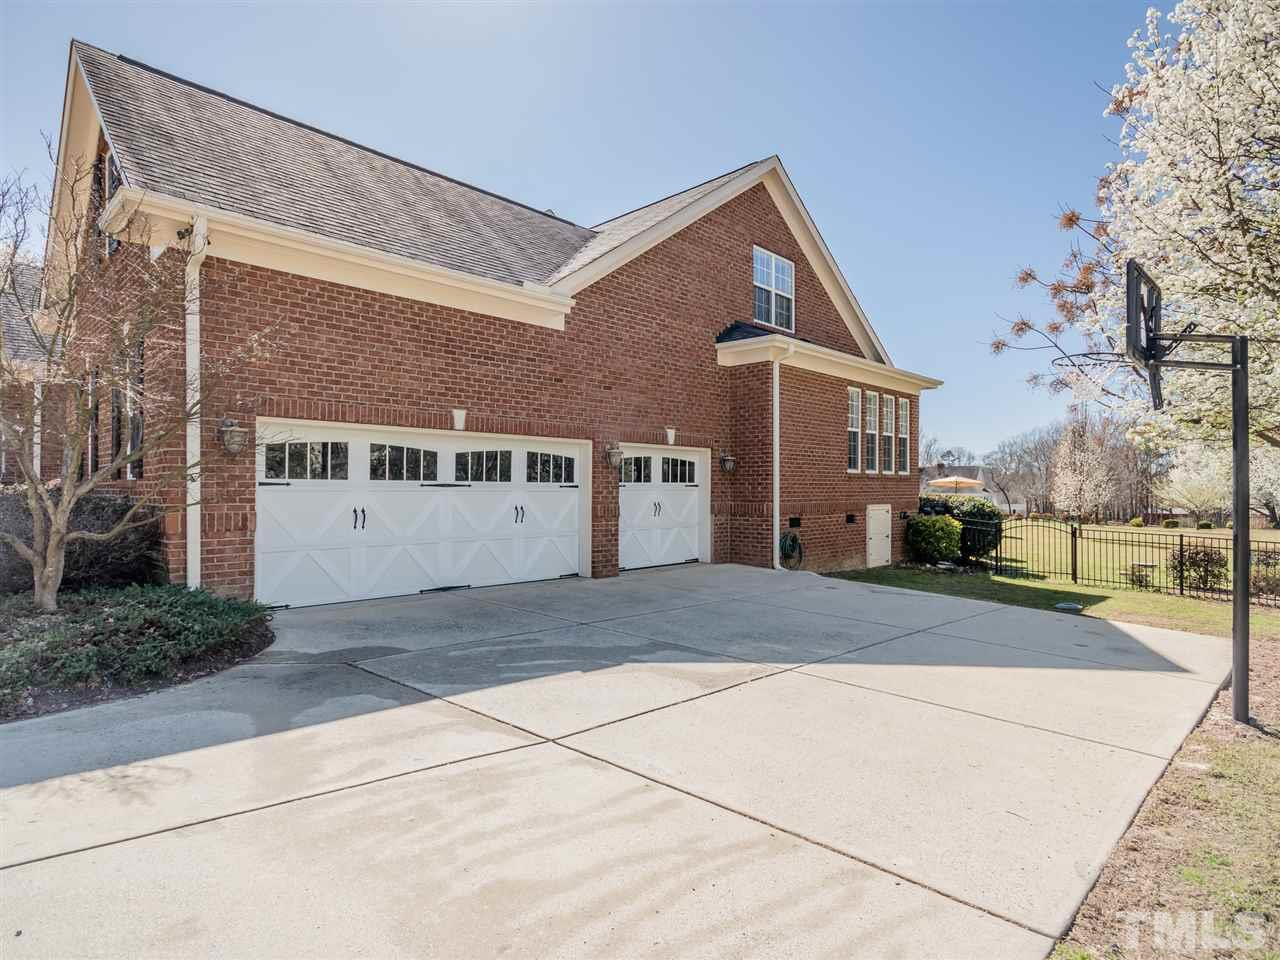 You're going to love this open, spacious and bright ranch-like design with additional living space on second floor.